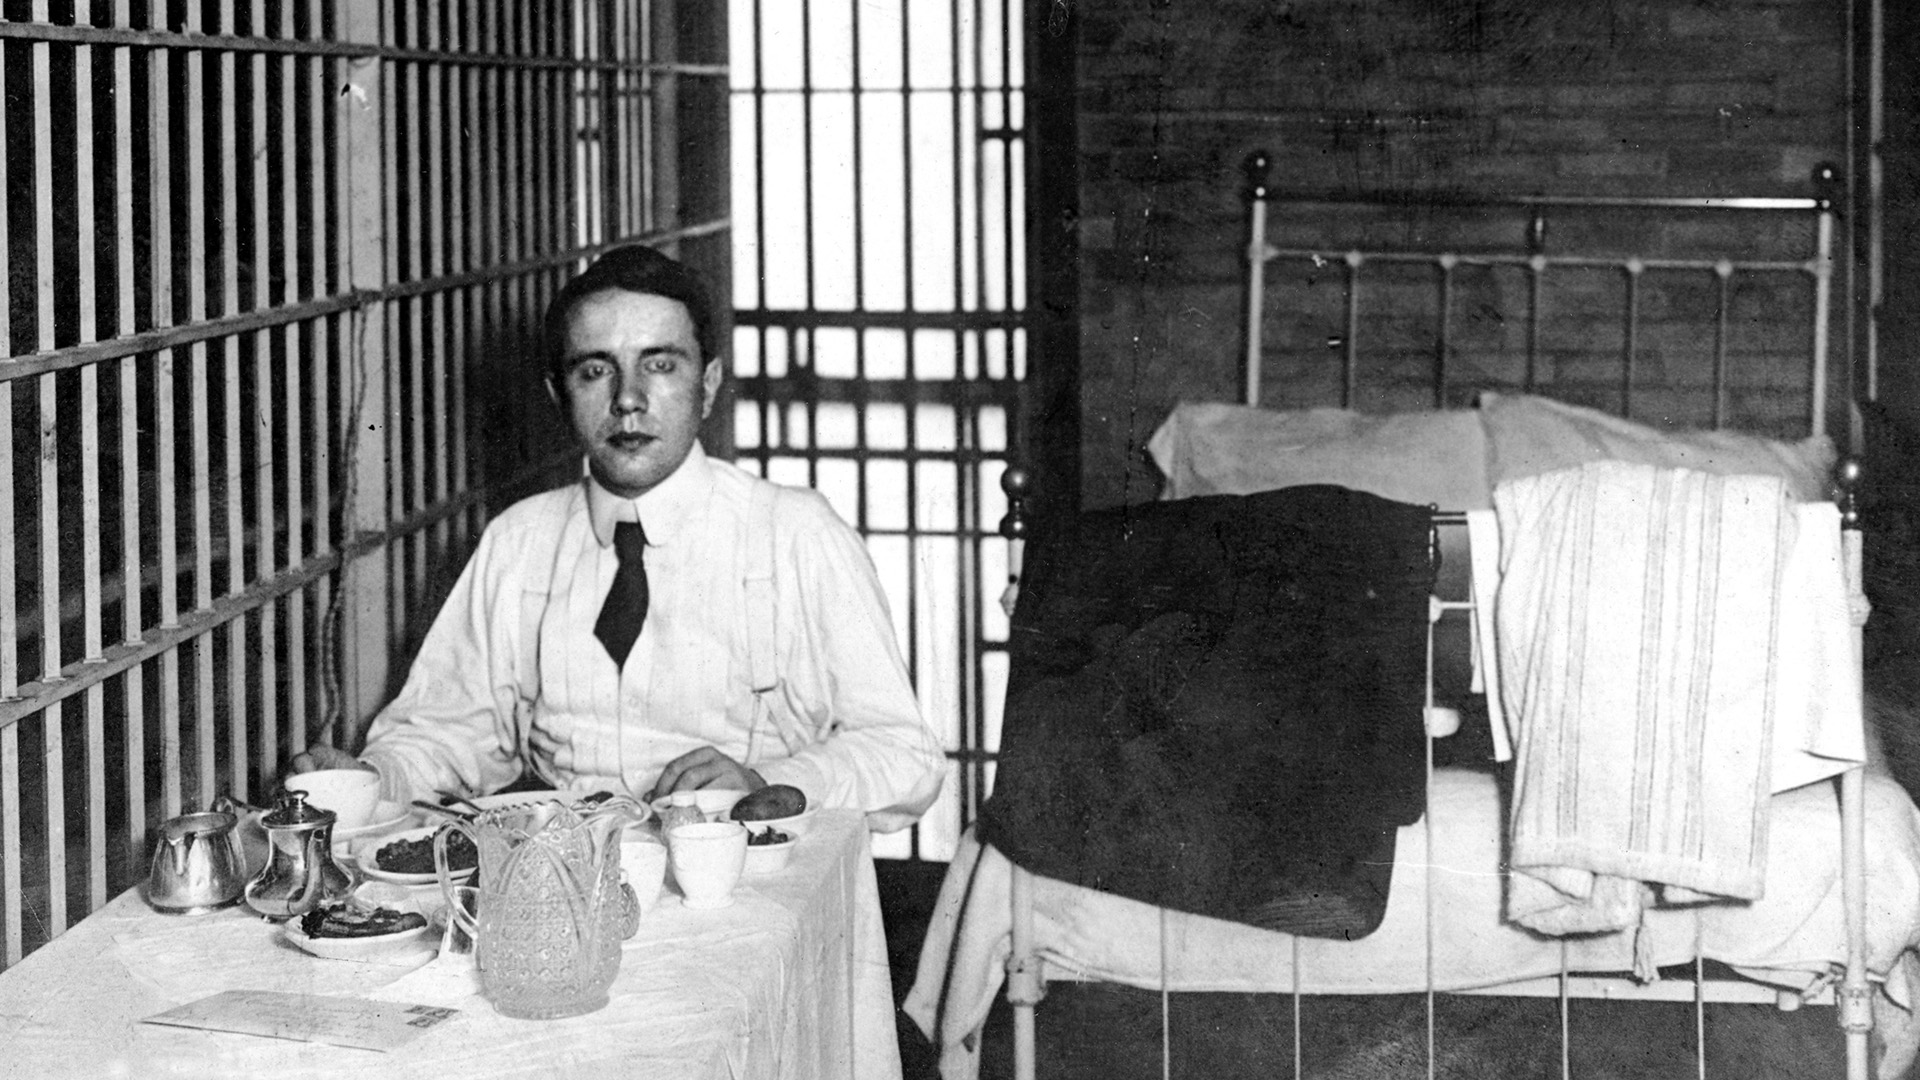 The 1906 Celebrity Murder That Shocked the World